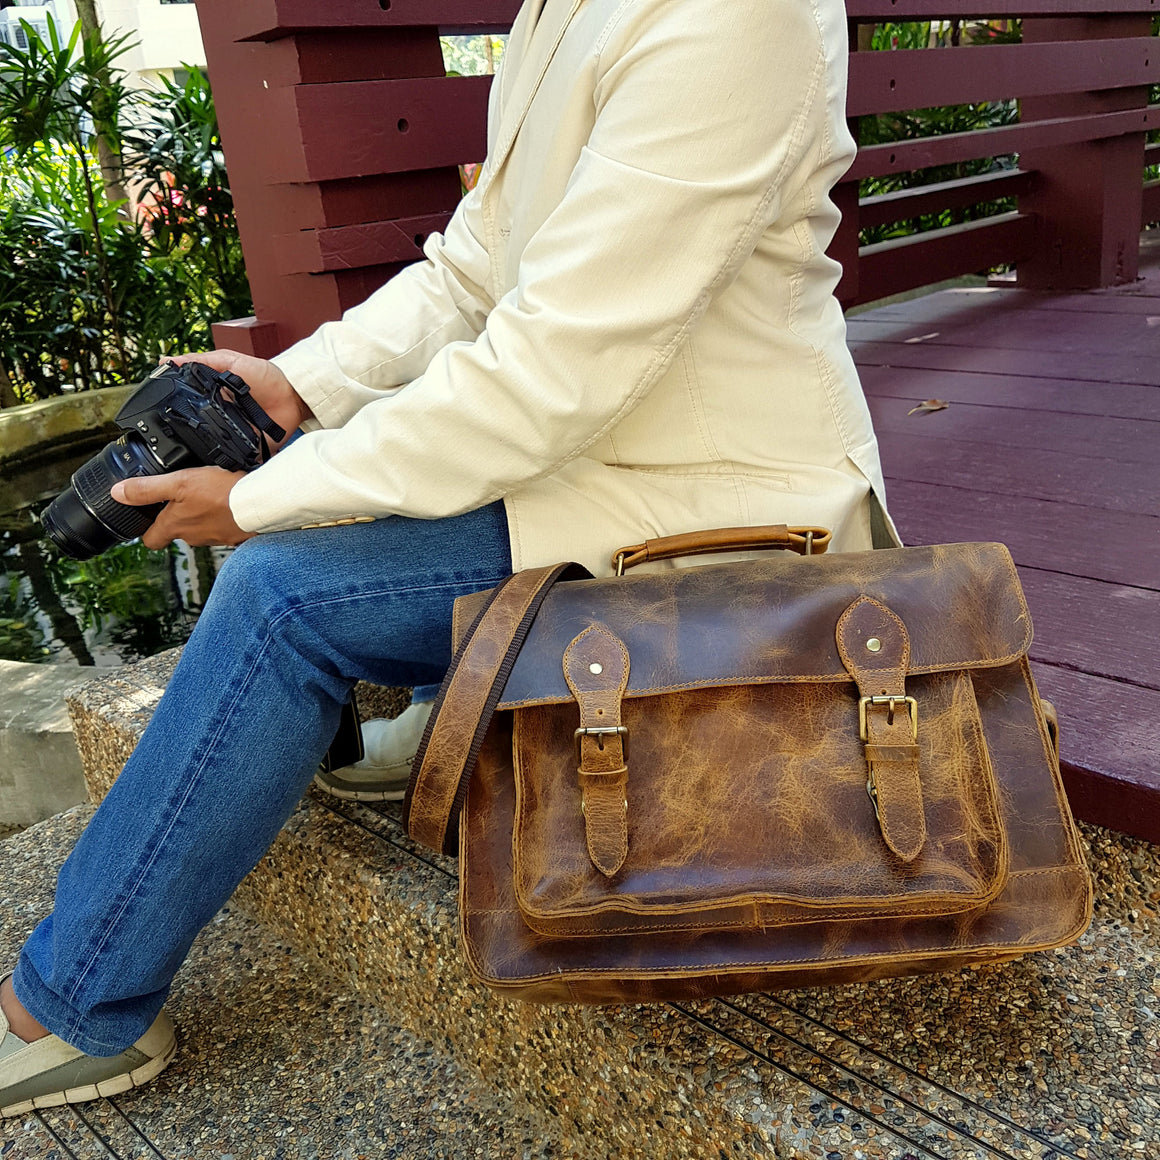 Rover Leather DSLR Camera Bag